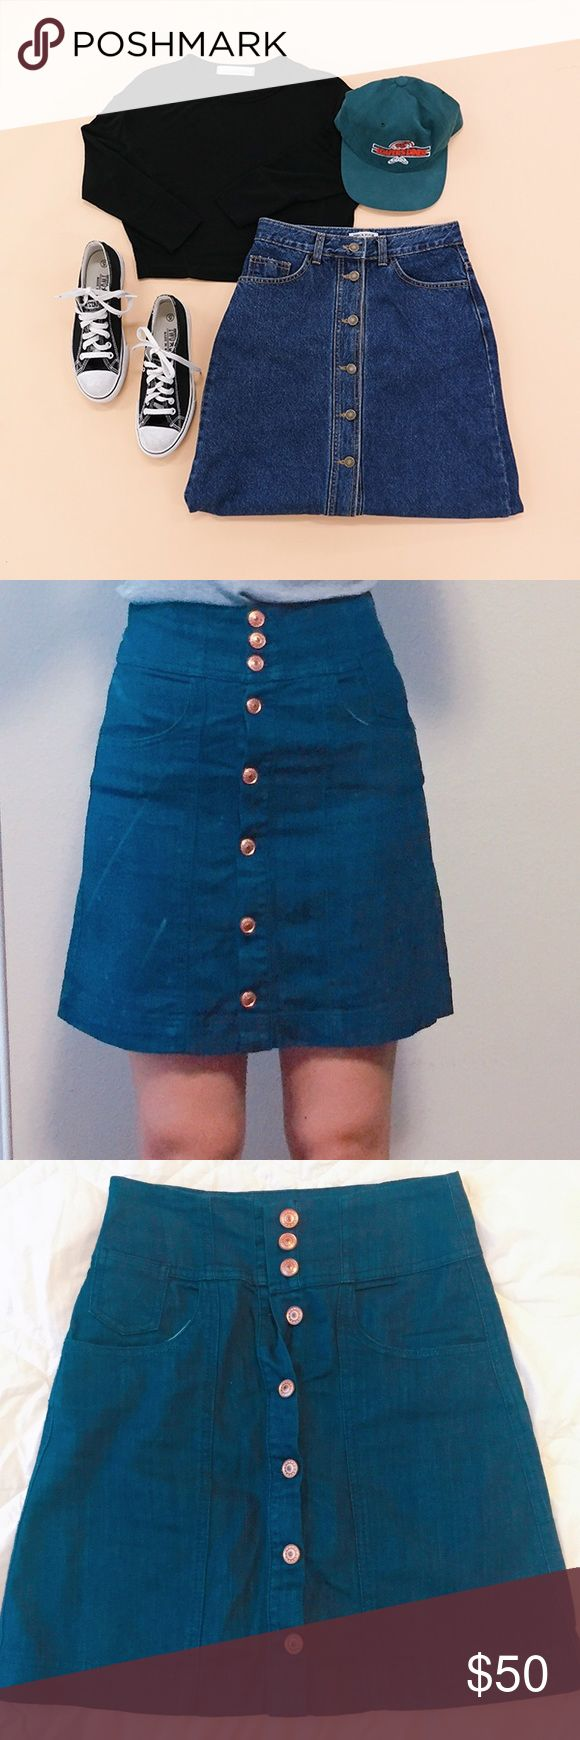 "NWOT Zara High waisted button up flare denim skirt NWOT Bershka denim button up flare skirt. Never worn,  excellent condition. High waisted. Denim with elastane blend, stretchy and comfy! Buttons on the front. A line flare fit. Total length: 18"", waist: 26"", hip: 34"". Edge of the skirt:  40"". PRICE FIRM. It's from Bershka, Zara's company. Feel free to ask any questions if you have. Thank you 🙏💕 Zara Skirts A-Line or Full"